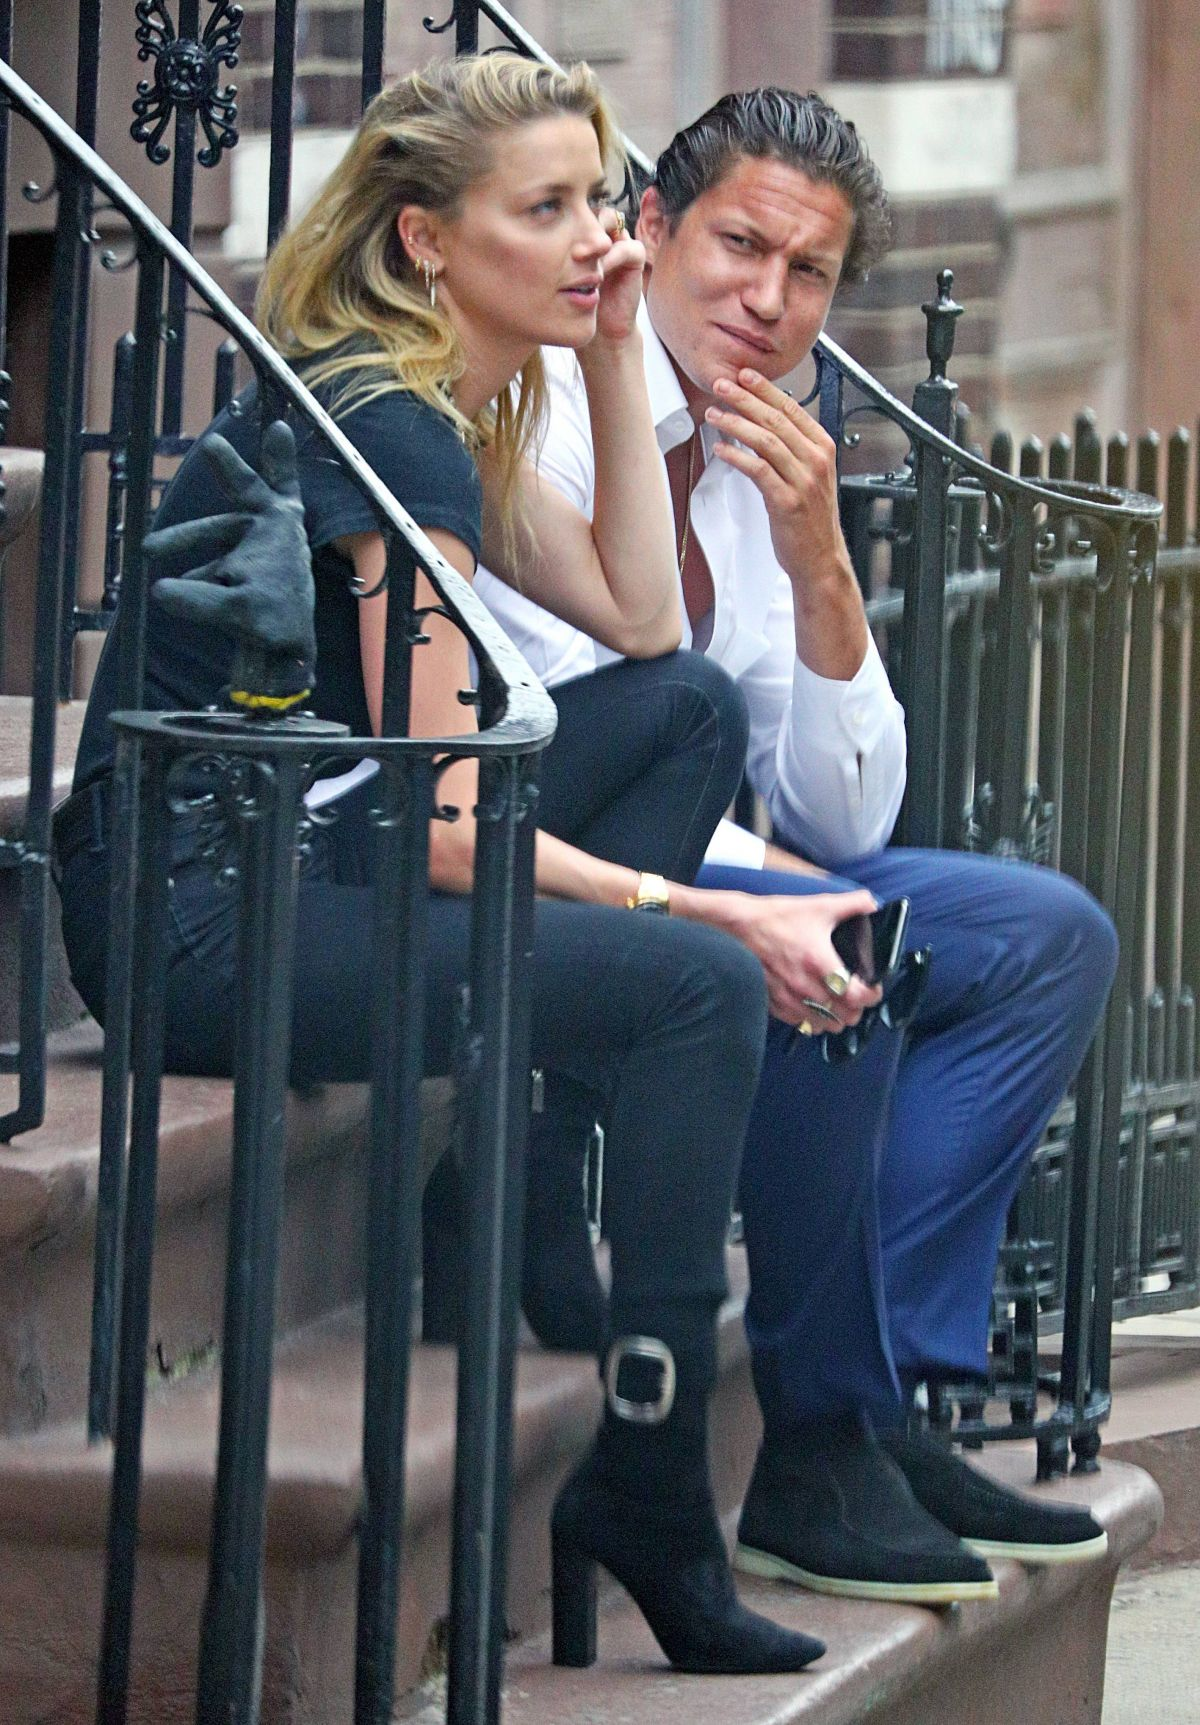 amber heard and vito schnabel out in new york 06072018